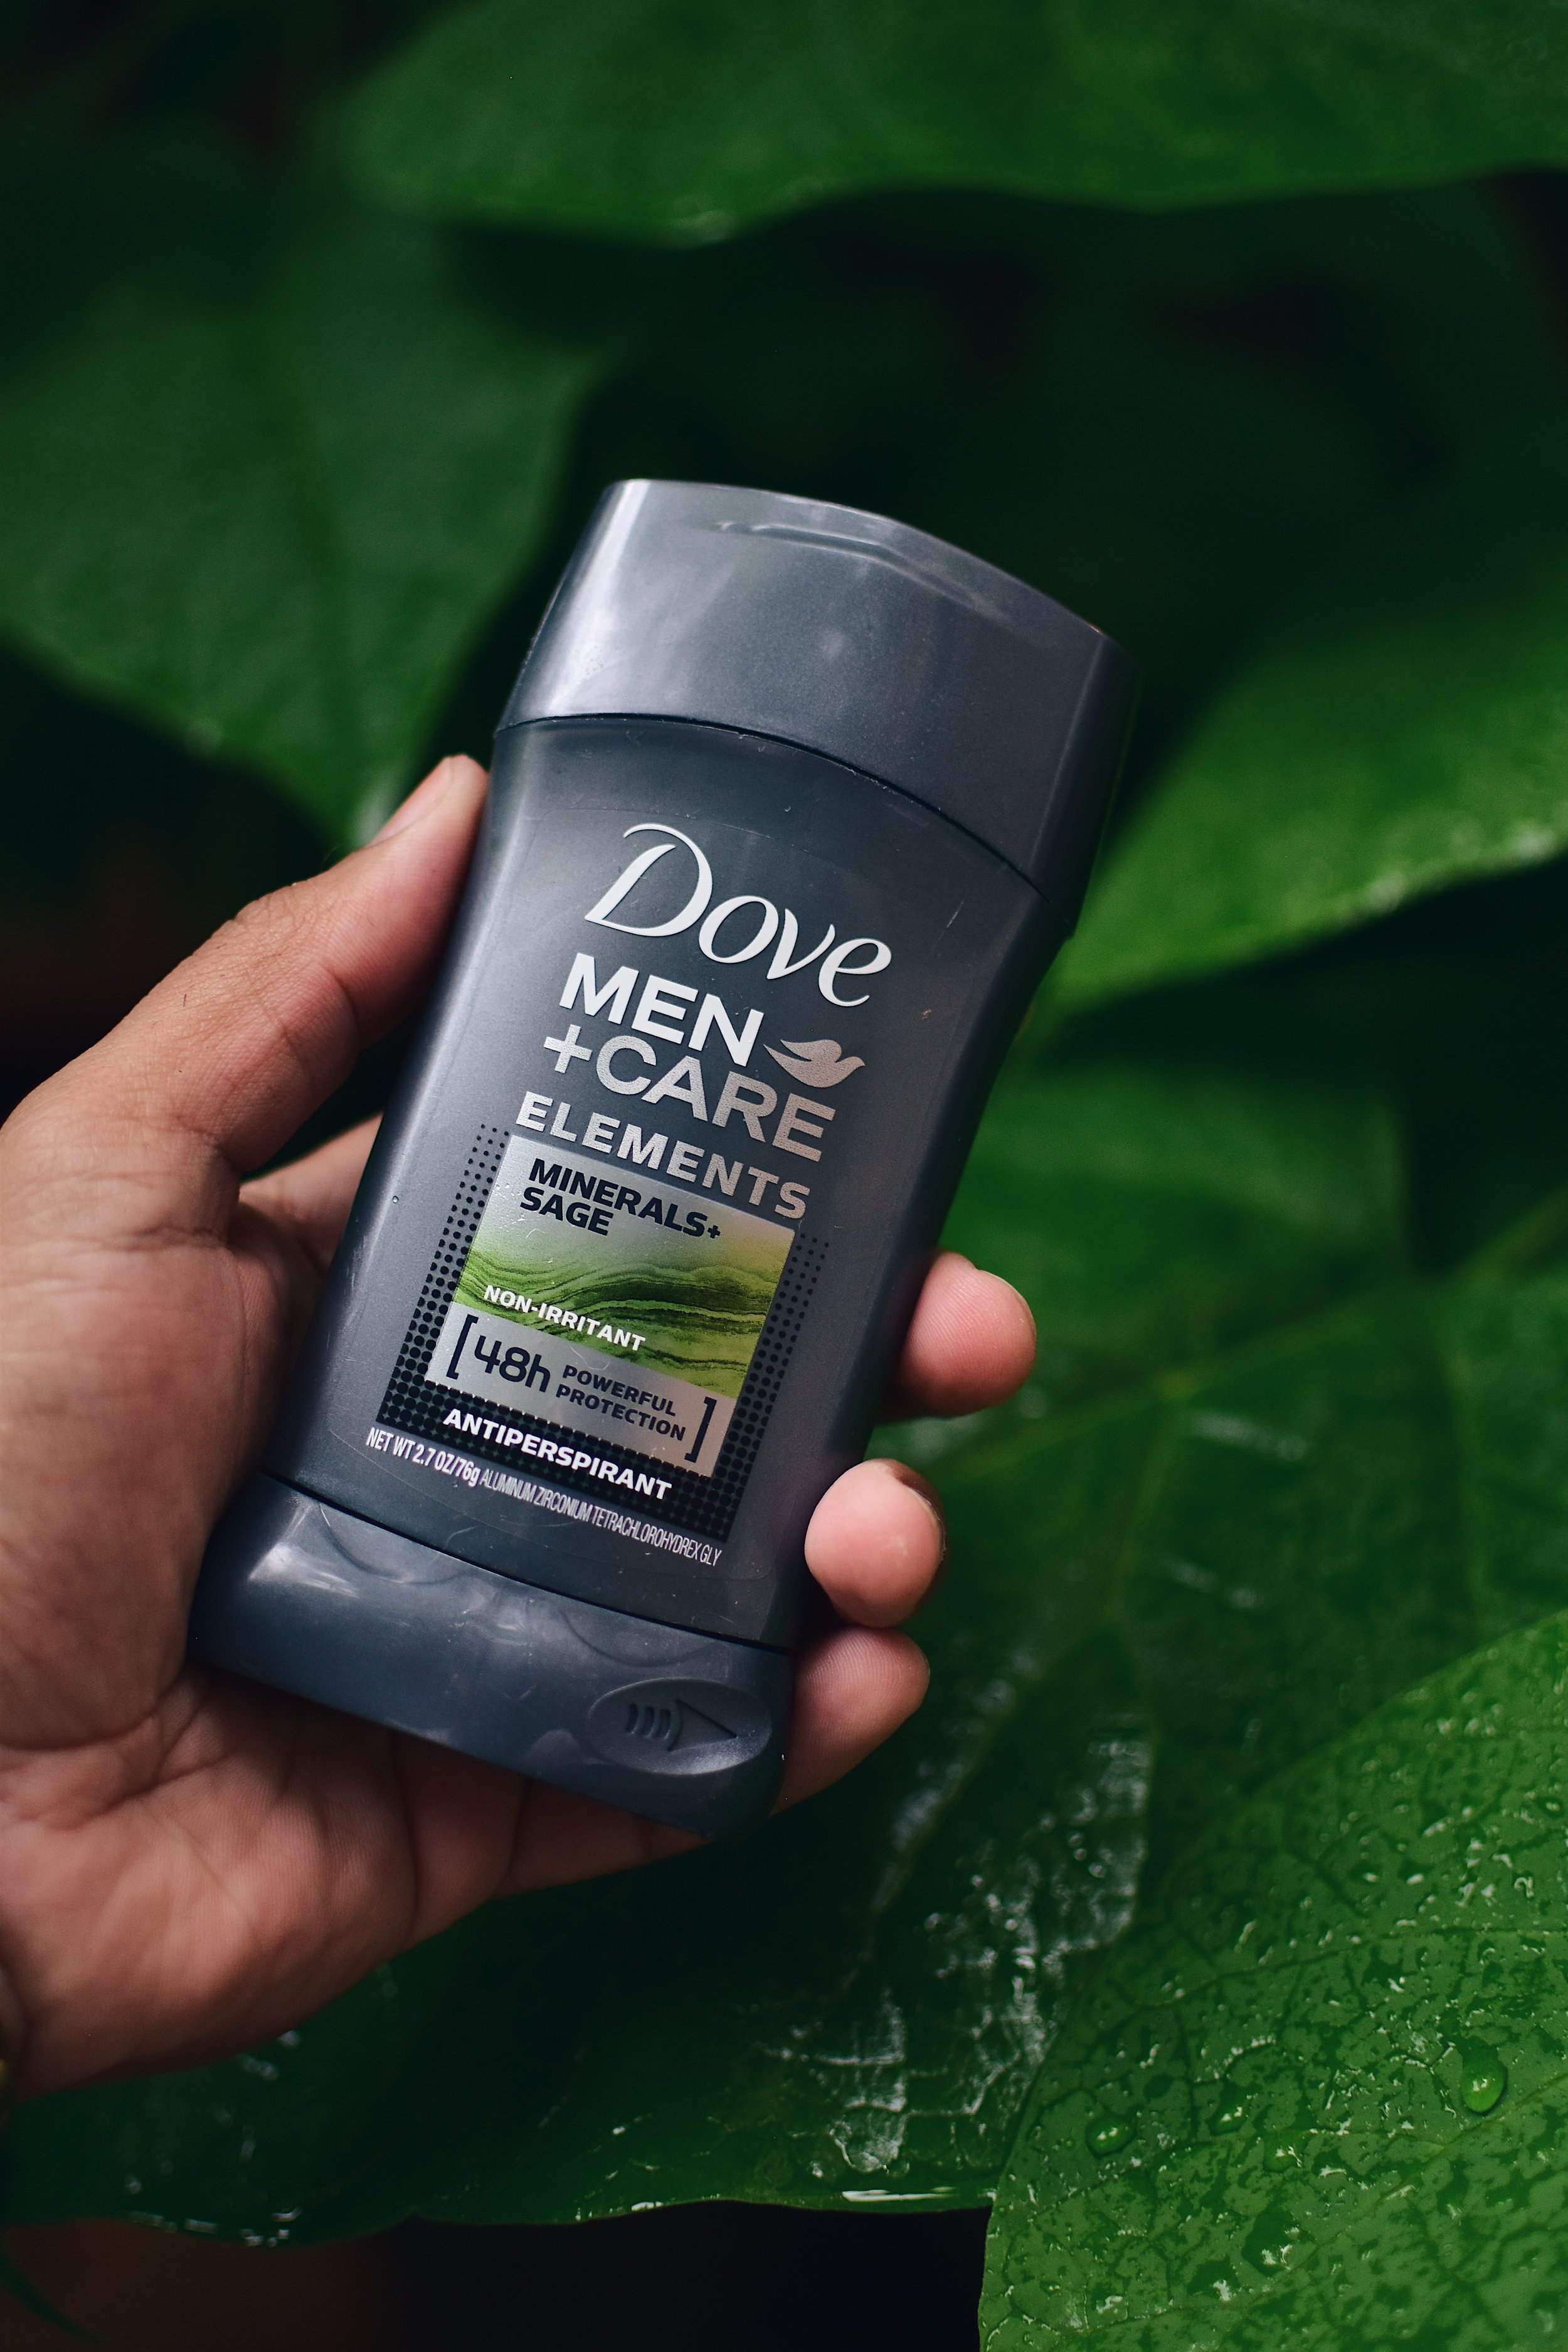 Dove Men+Care Elements Minerals+Sage Deodorant is a favorite of mine. A fresh and clean scent with powerful protection.